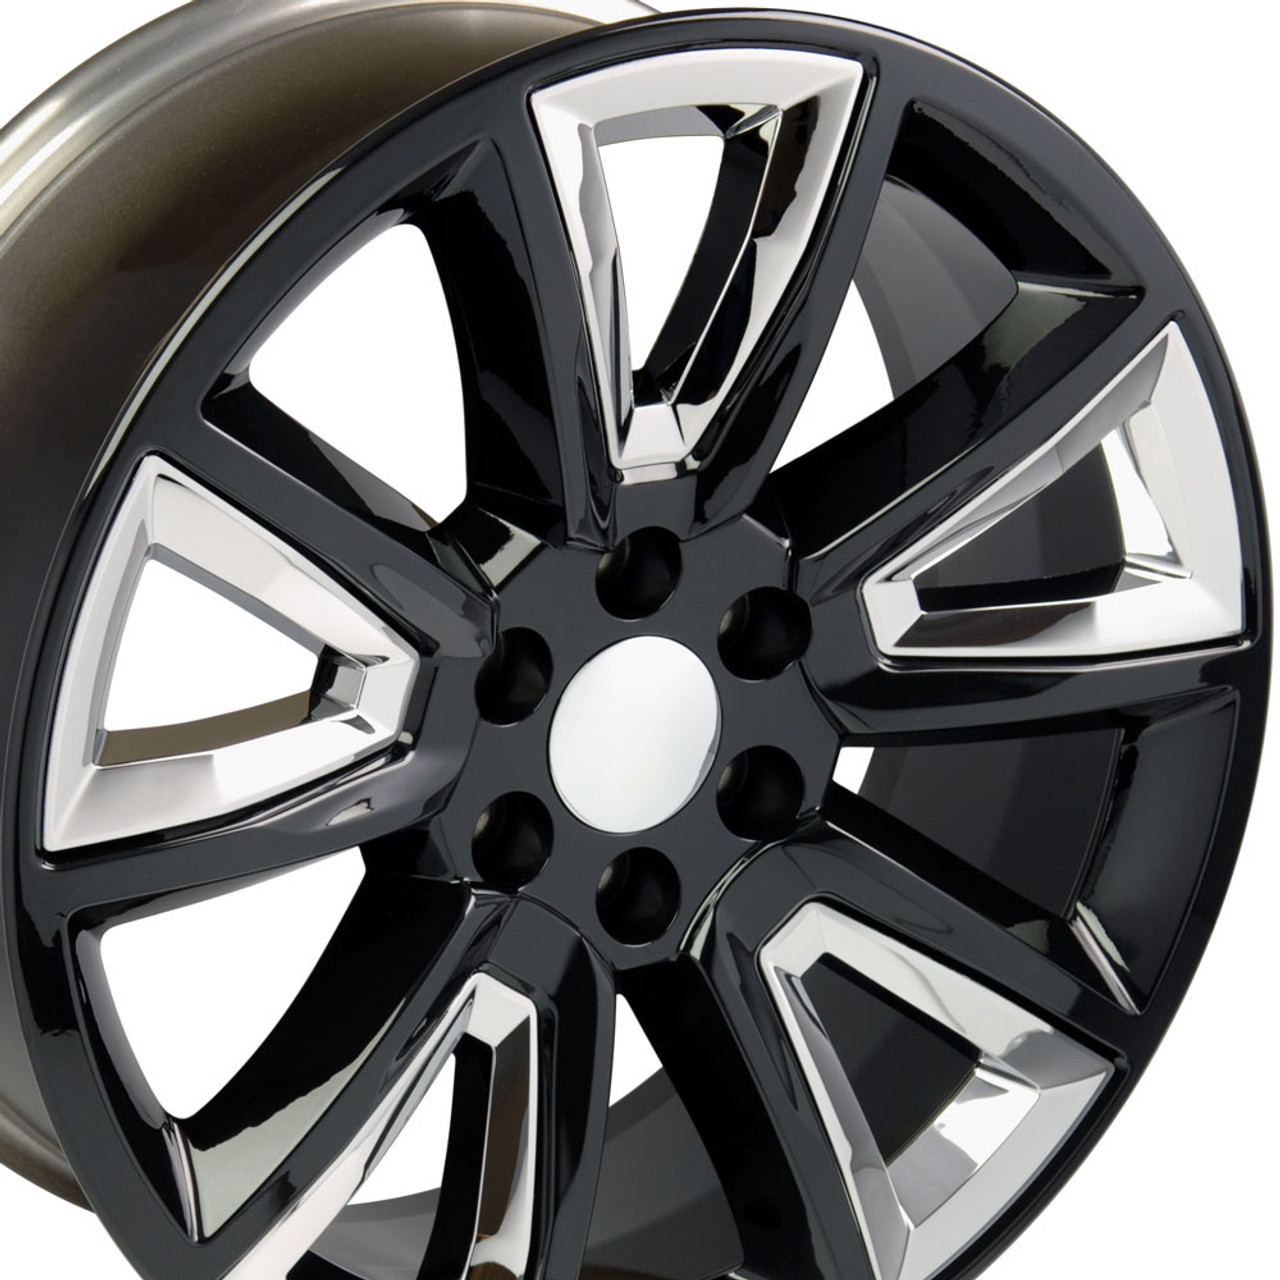 All Chevy chevy 22 rims : 22